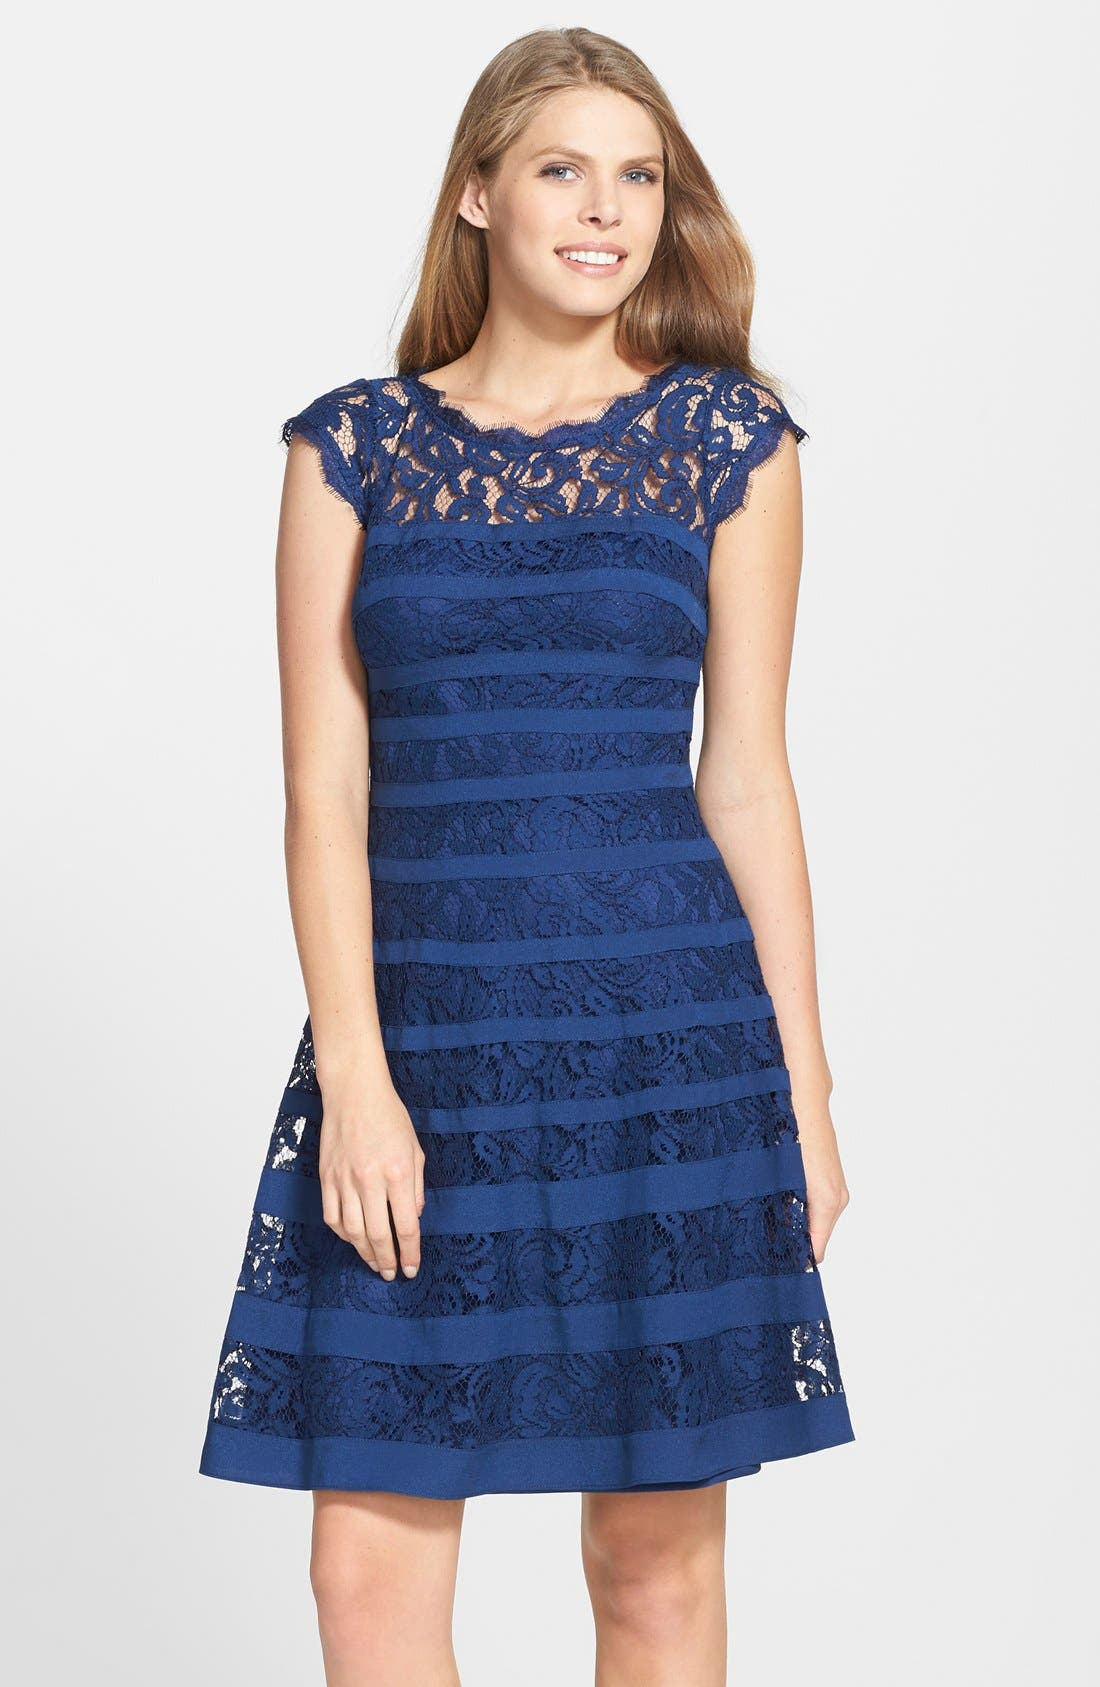 Alternate Image 1 Selected - Adrianna Papell Banded Lace Fit & Flare Dress